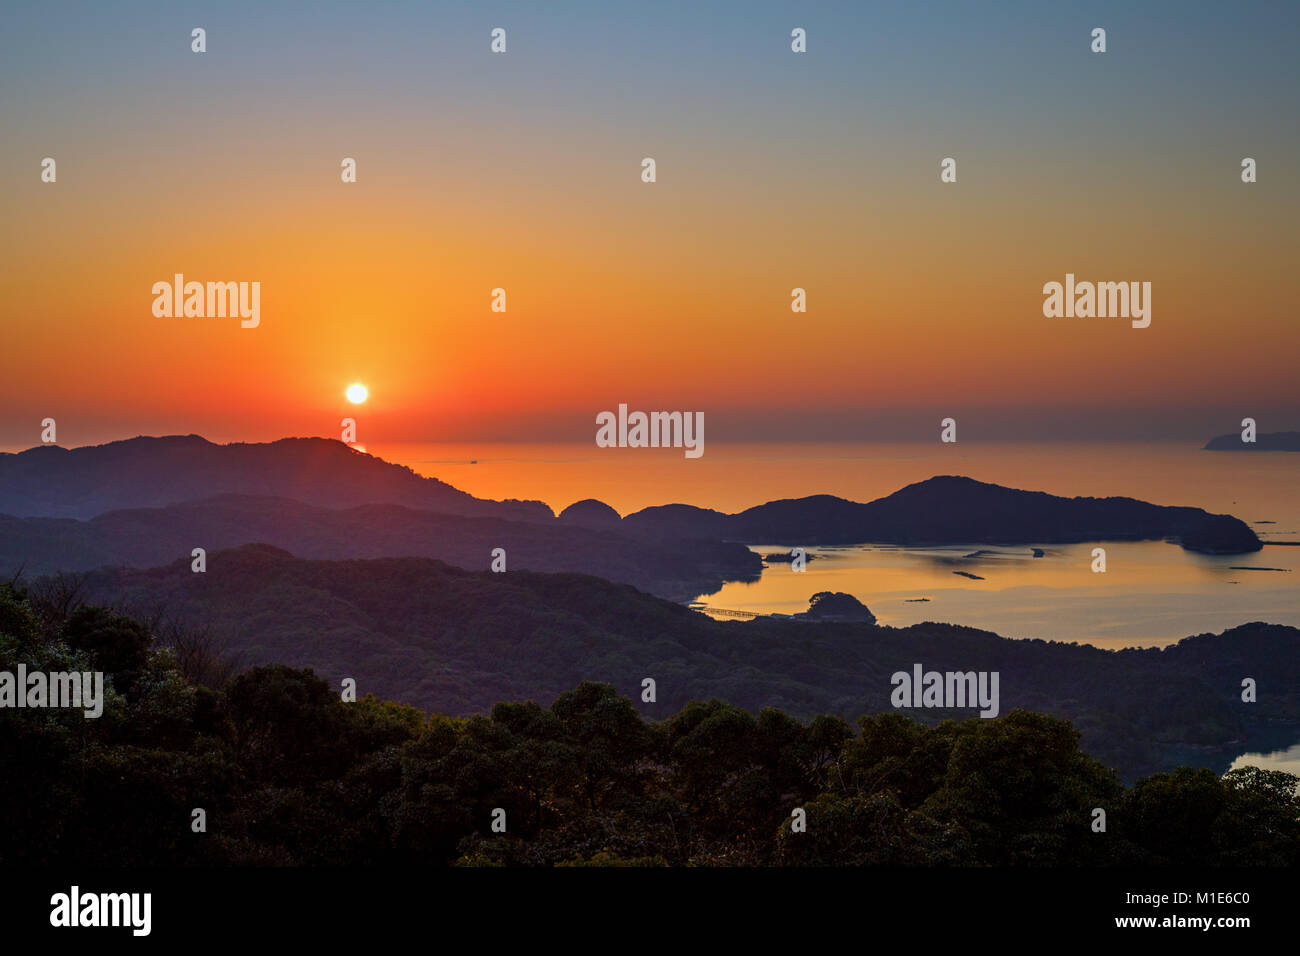 The orange sun setting over the calm, flat ocean with the silhouette of the islands of Sasebo, Japan - Stock Image